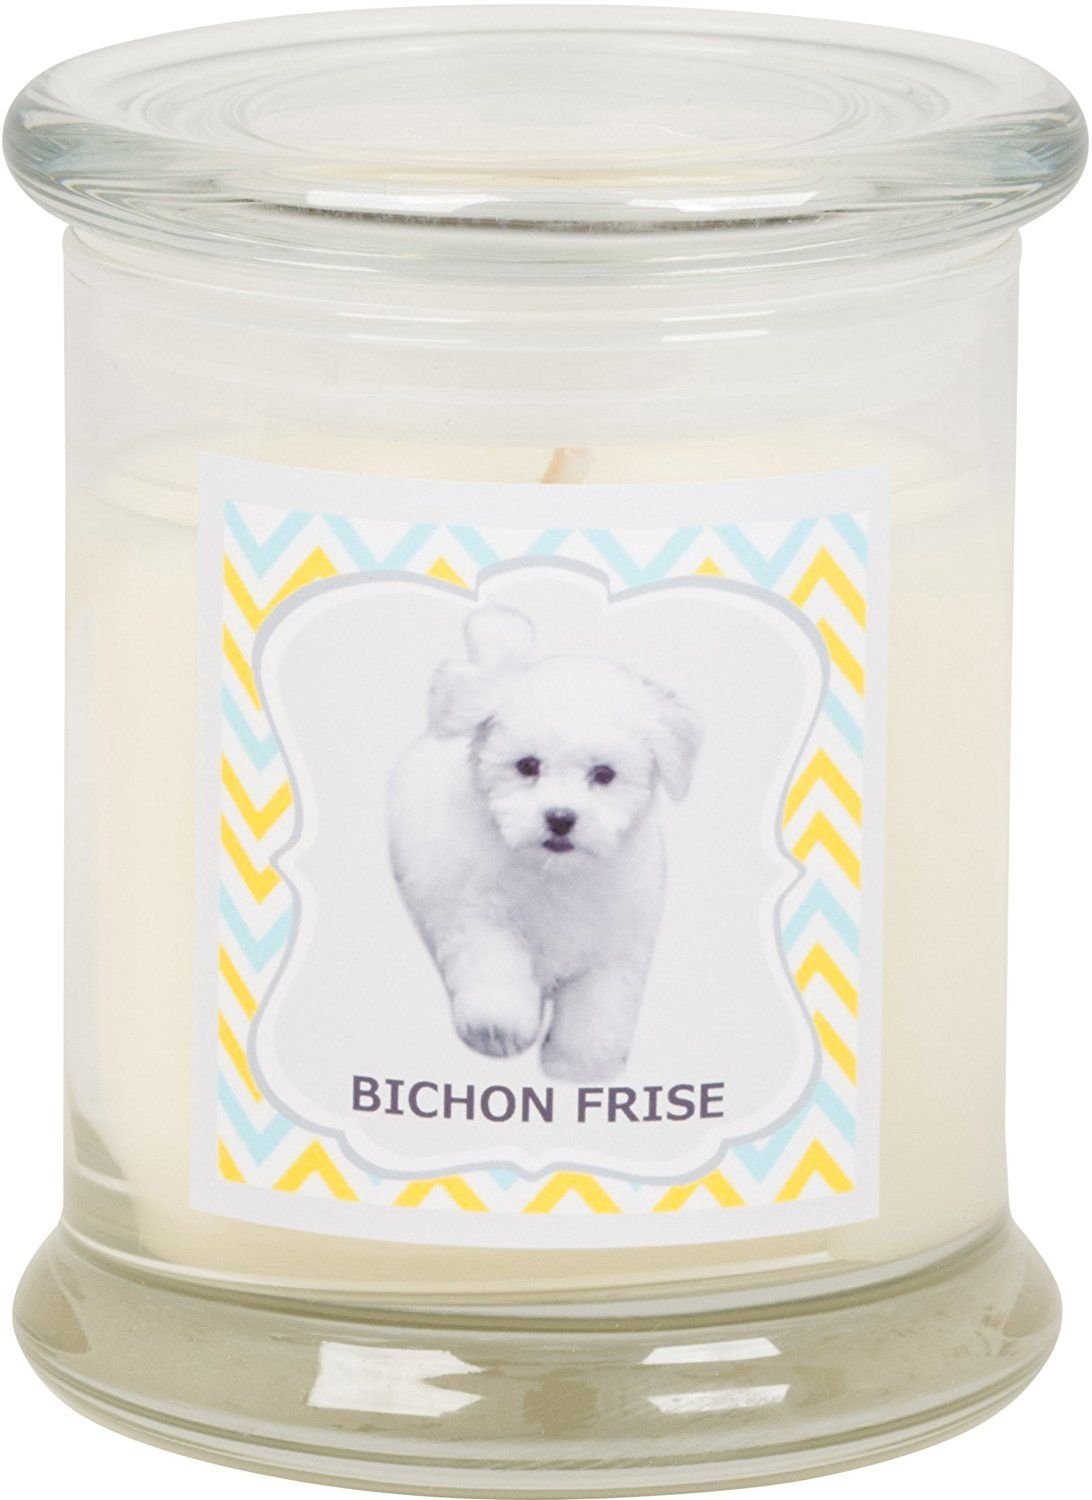 Aroma paws breed candle jar 12ounce bichon frise